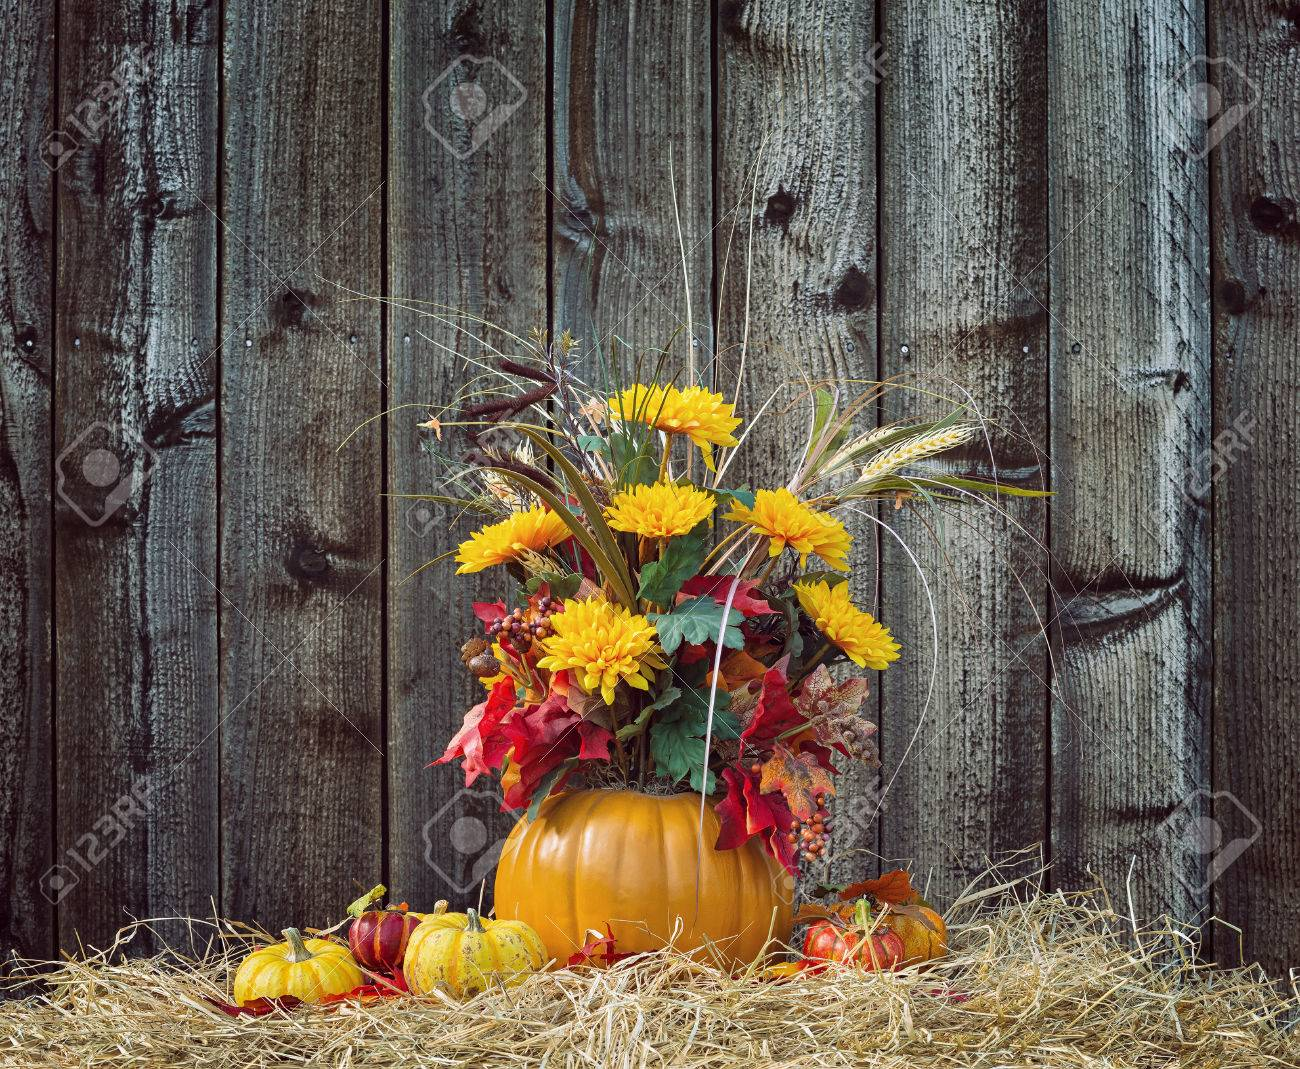 Pumpkin Flower Arrangement Display On Hay Against Rustic Wooden Background Stock Photo